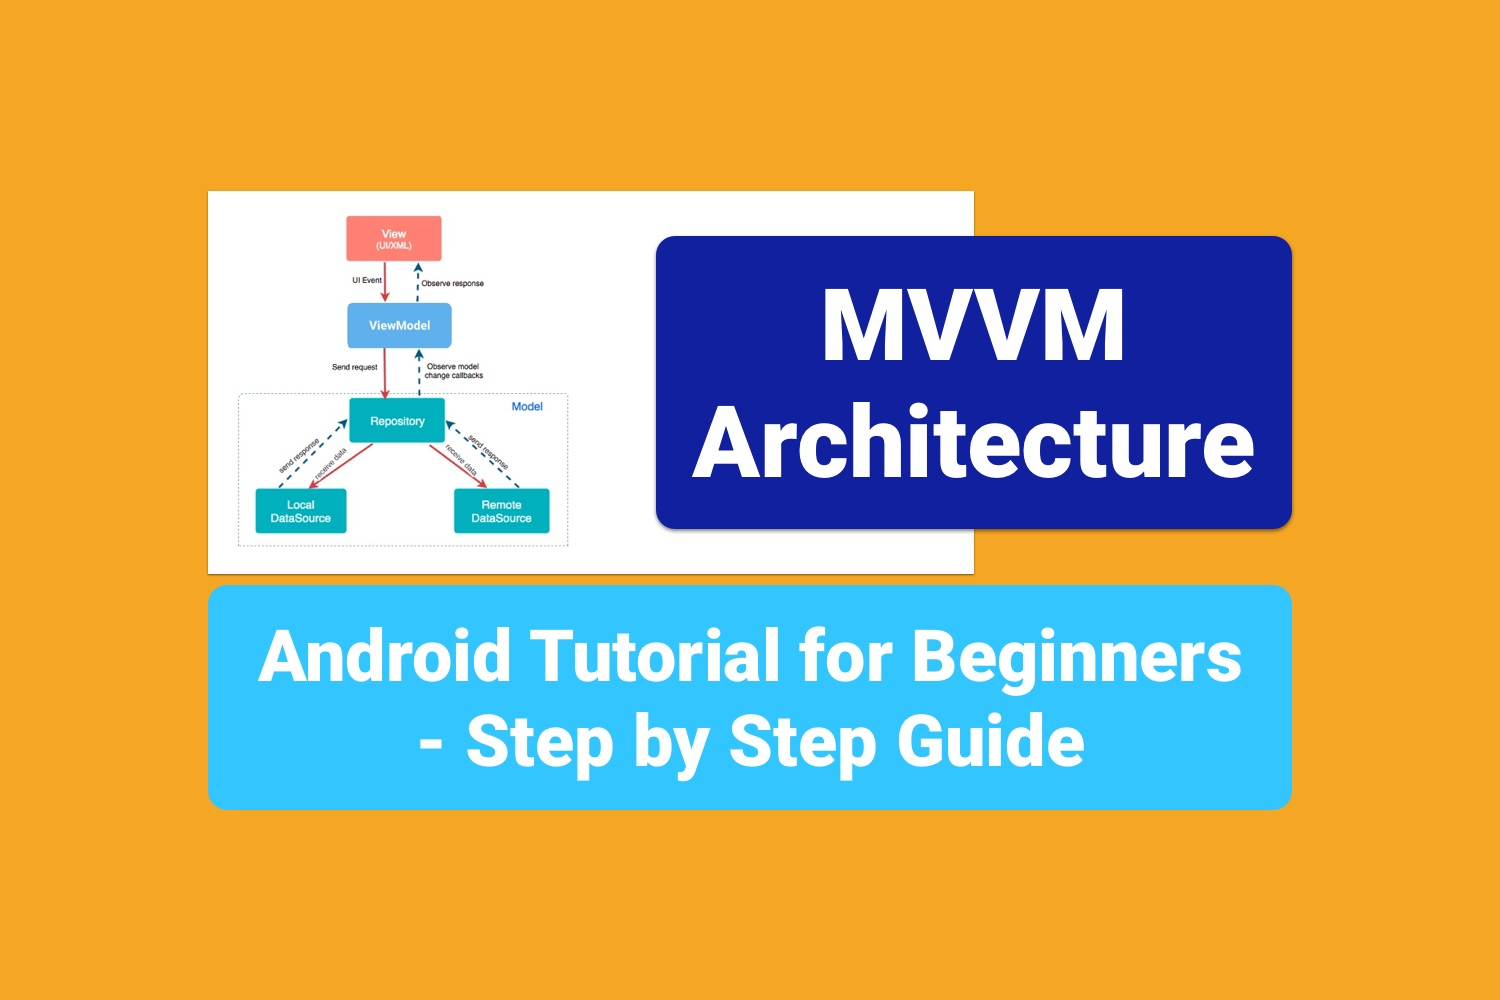 MVVM Architecture - Android Tutorial for Beginners - Step by Step Guide